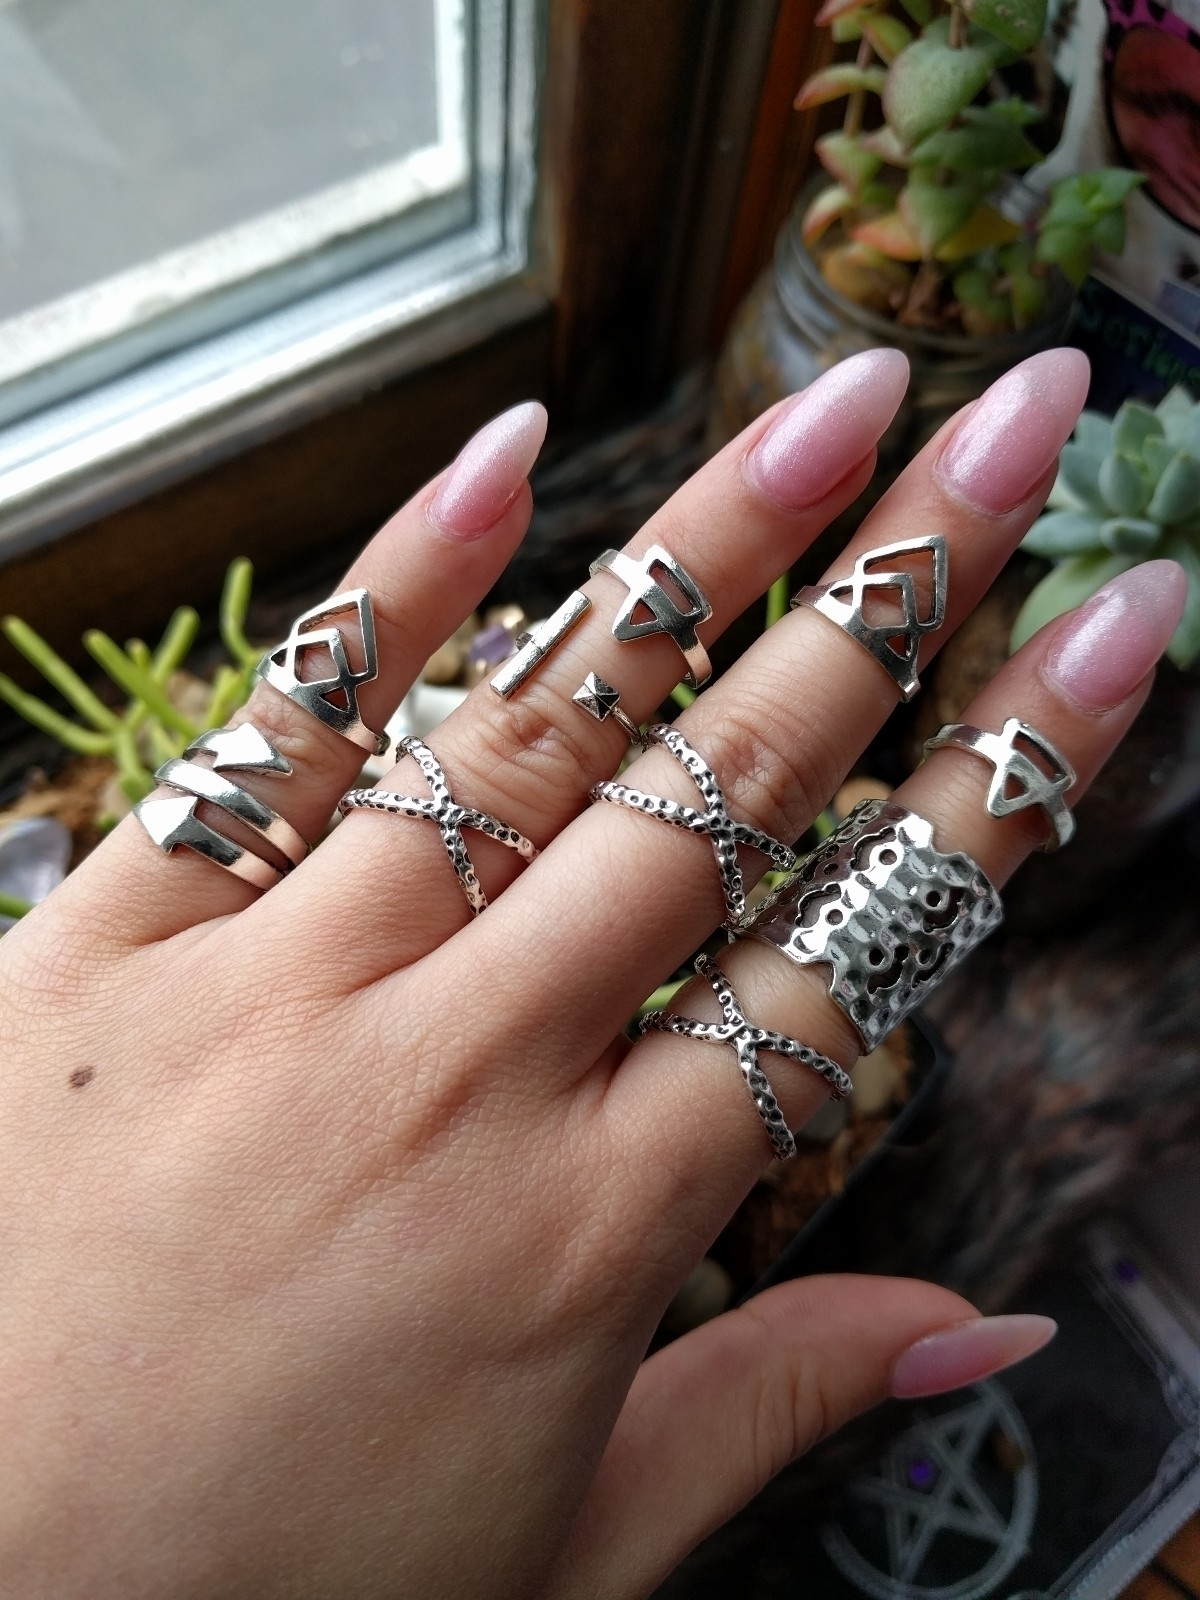 Babes rings dayyyysss! BRIELLE  - moonlitcreatures | ello